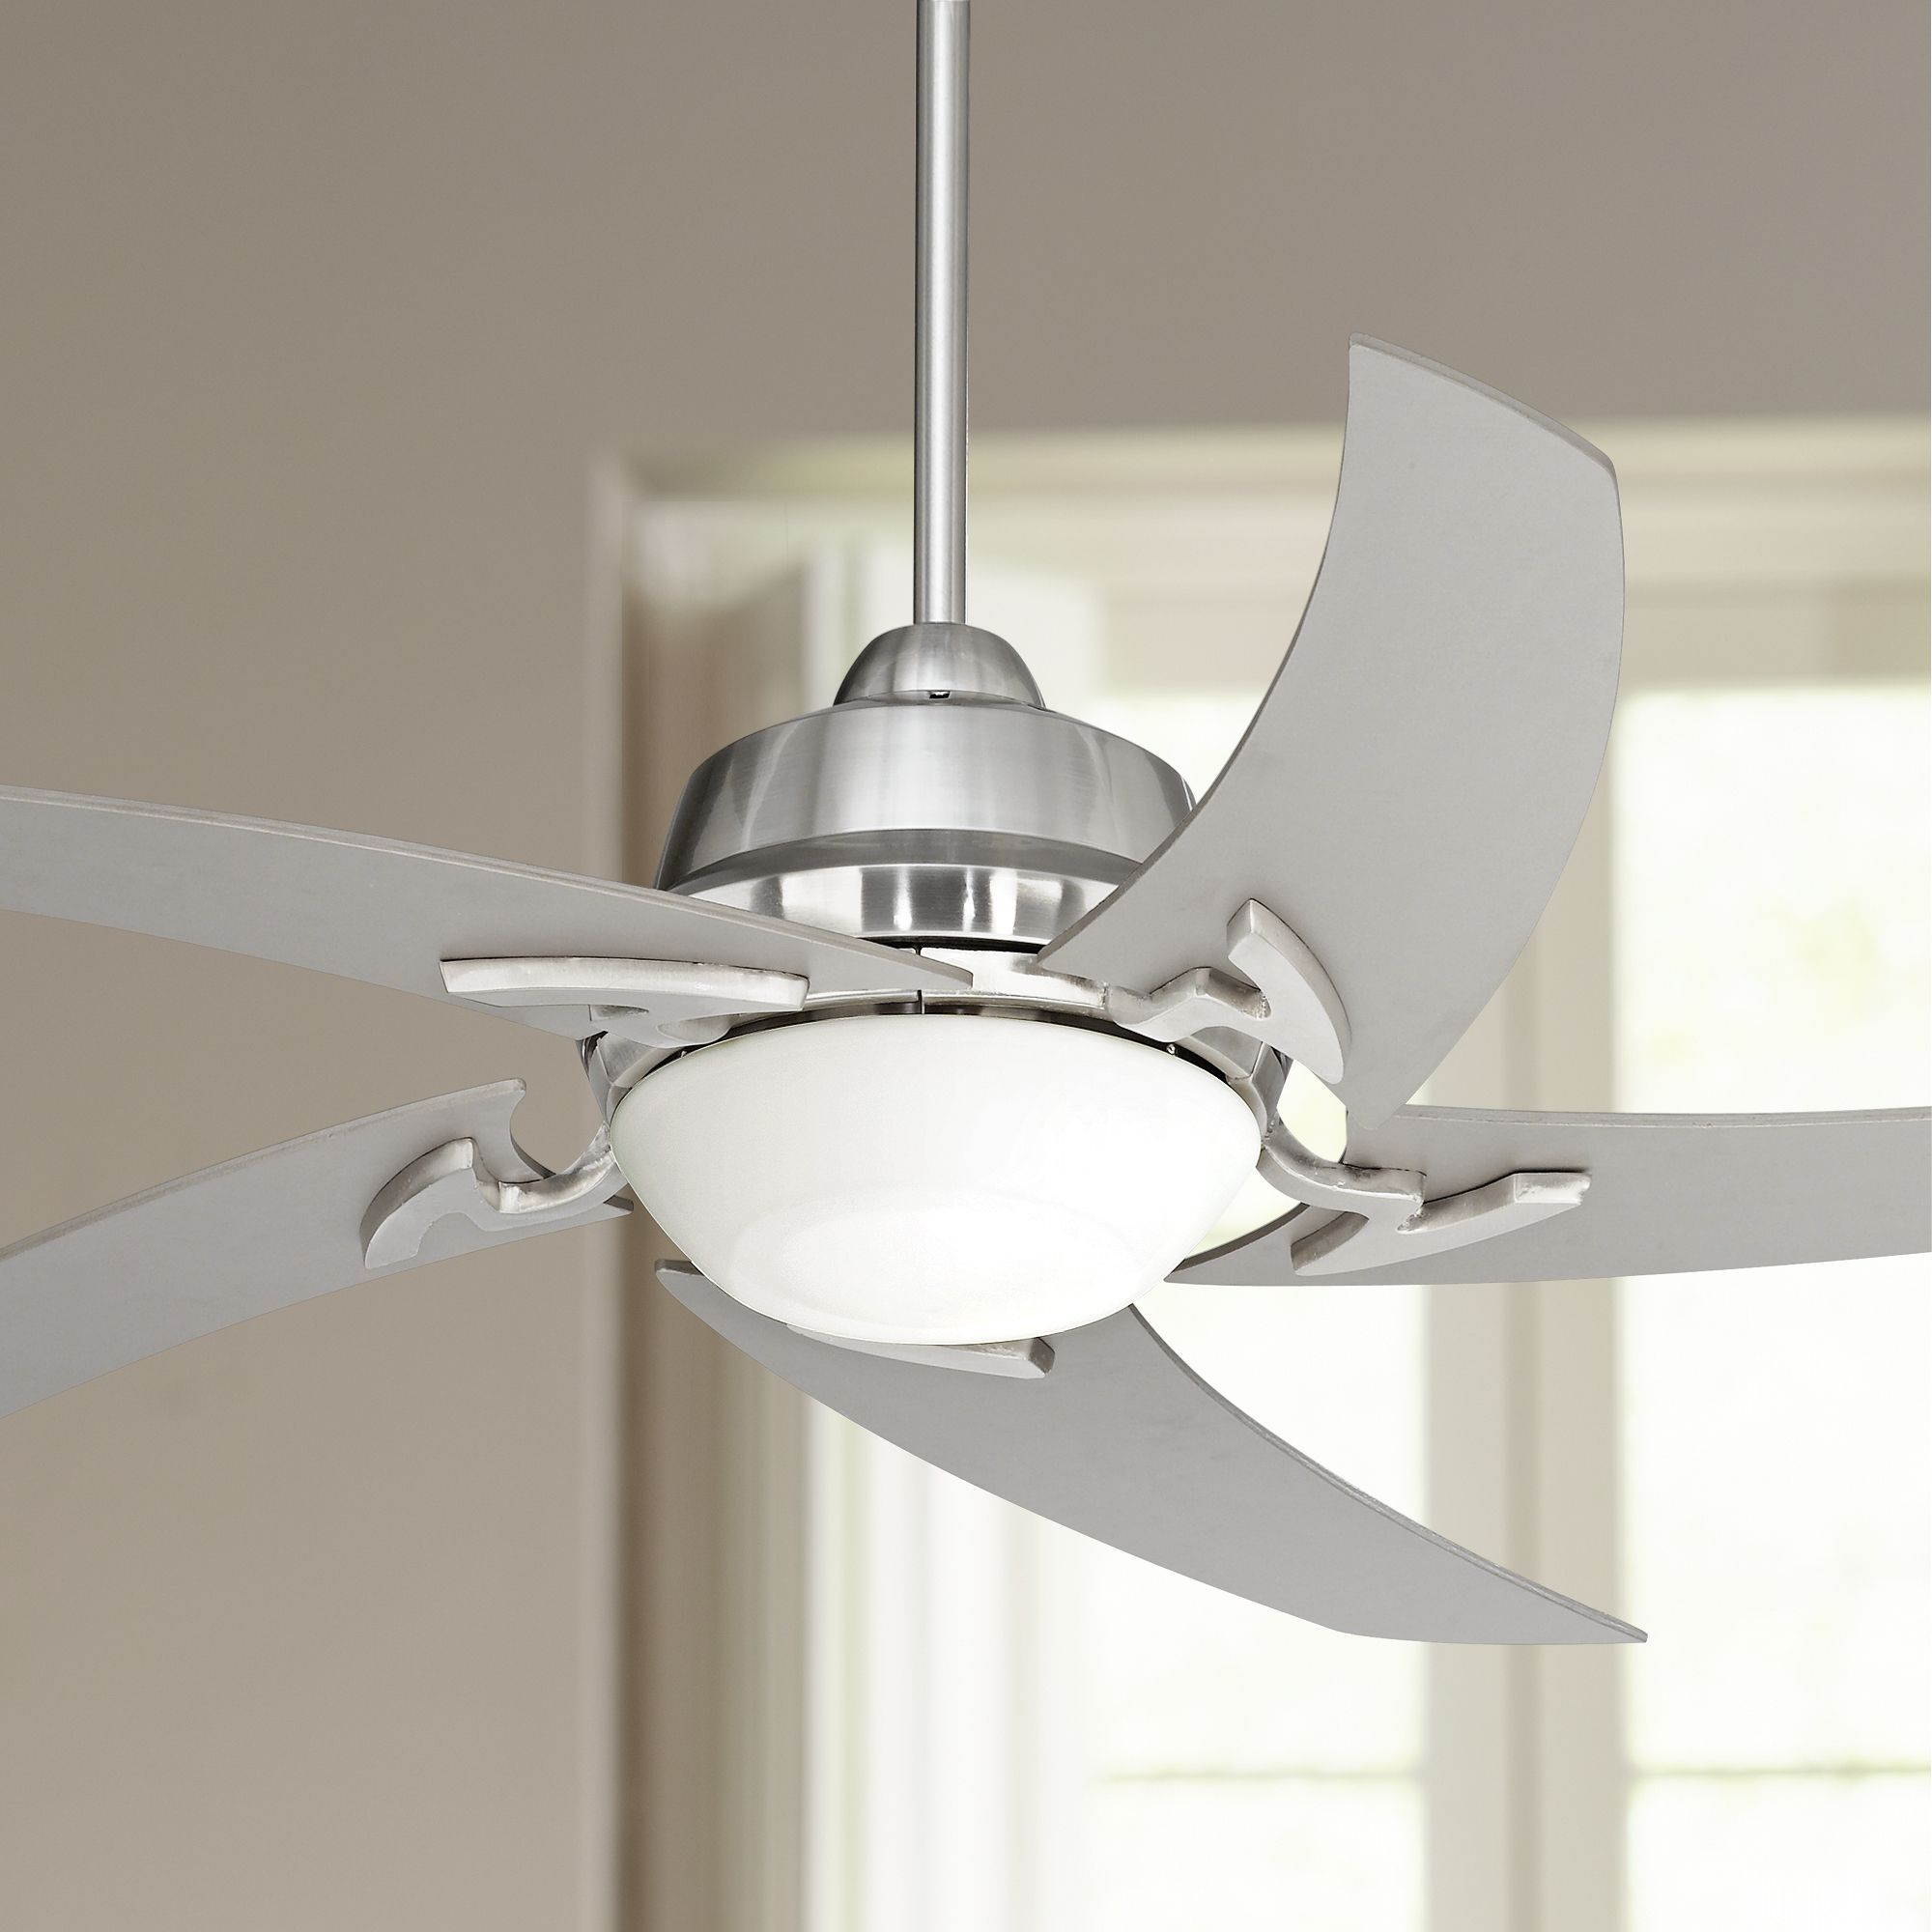 52 Quot Casa Vieja Modern Ceiling Fan With Light Led Remote